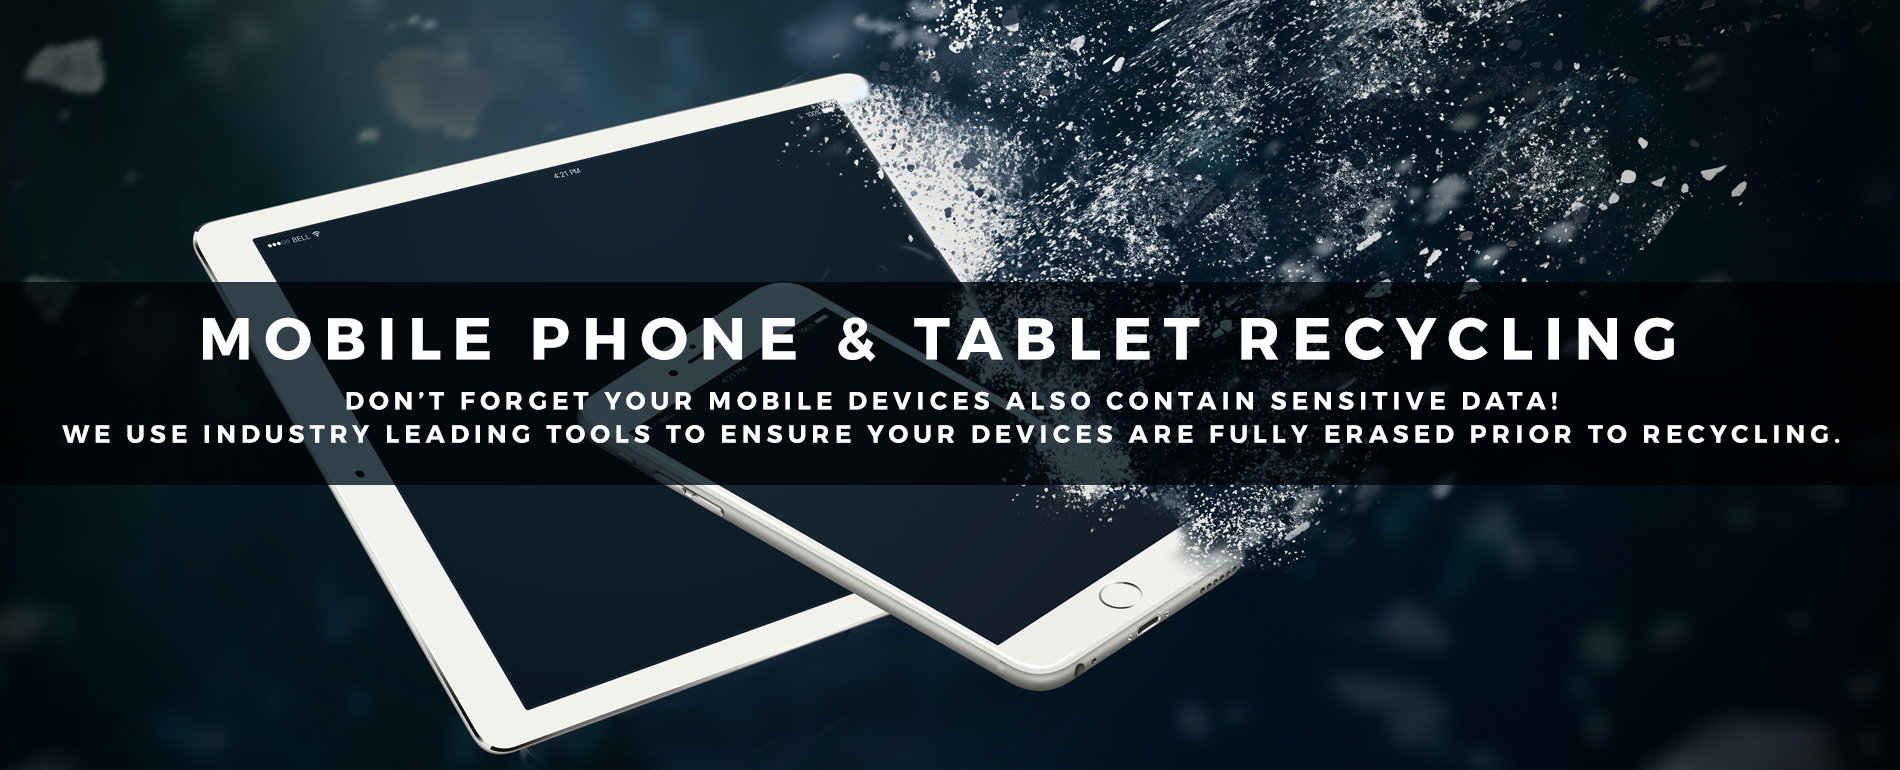 Mobile Phone & Tablet Recycling